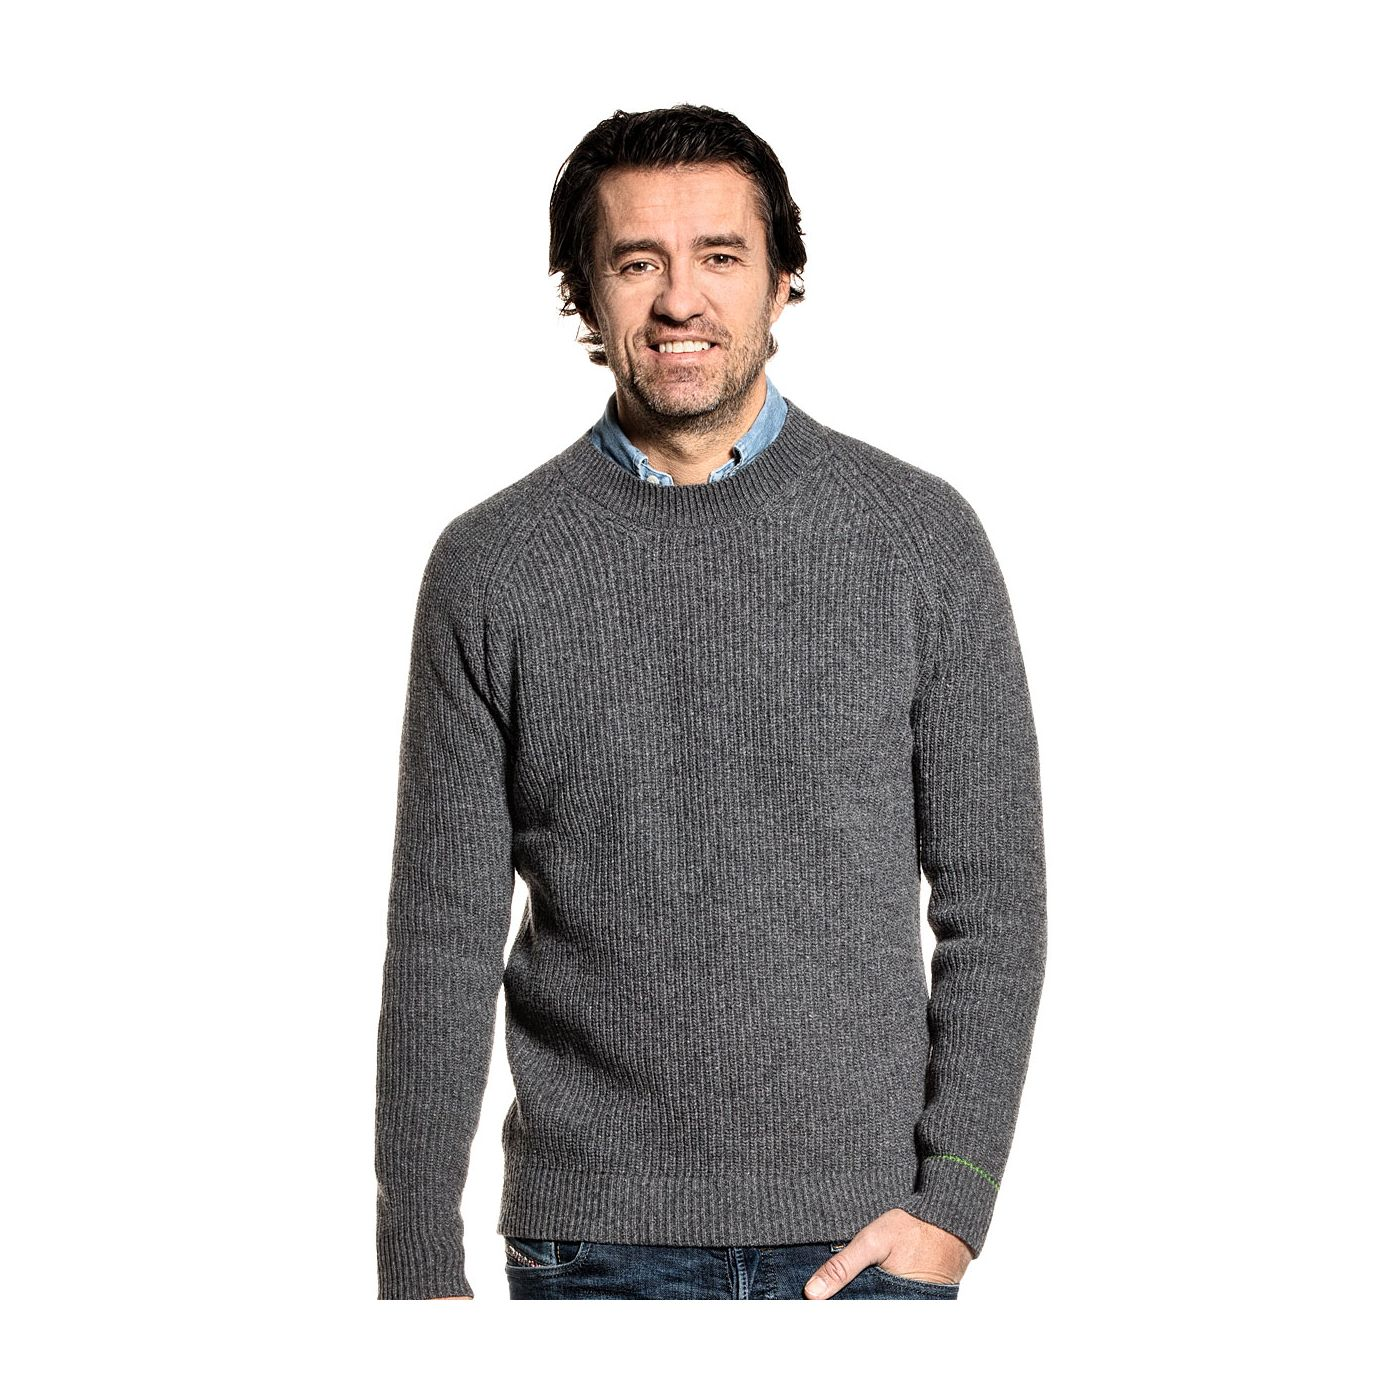 Recycled sweater for men made of Merino wool in Grey